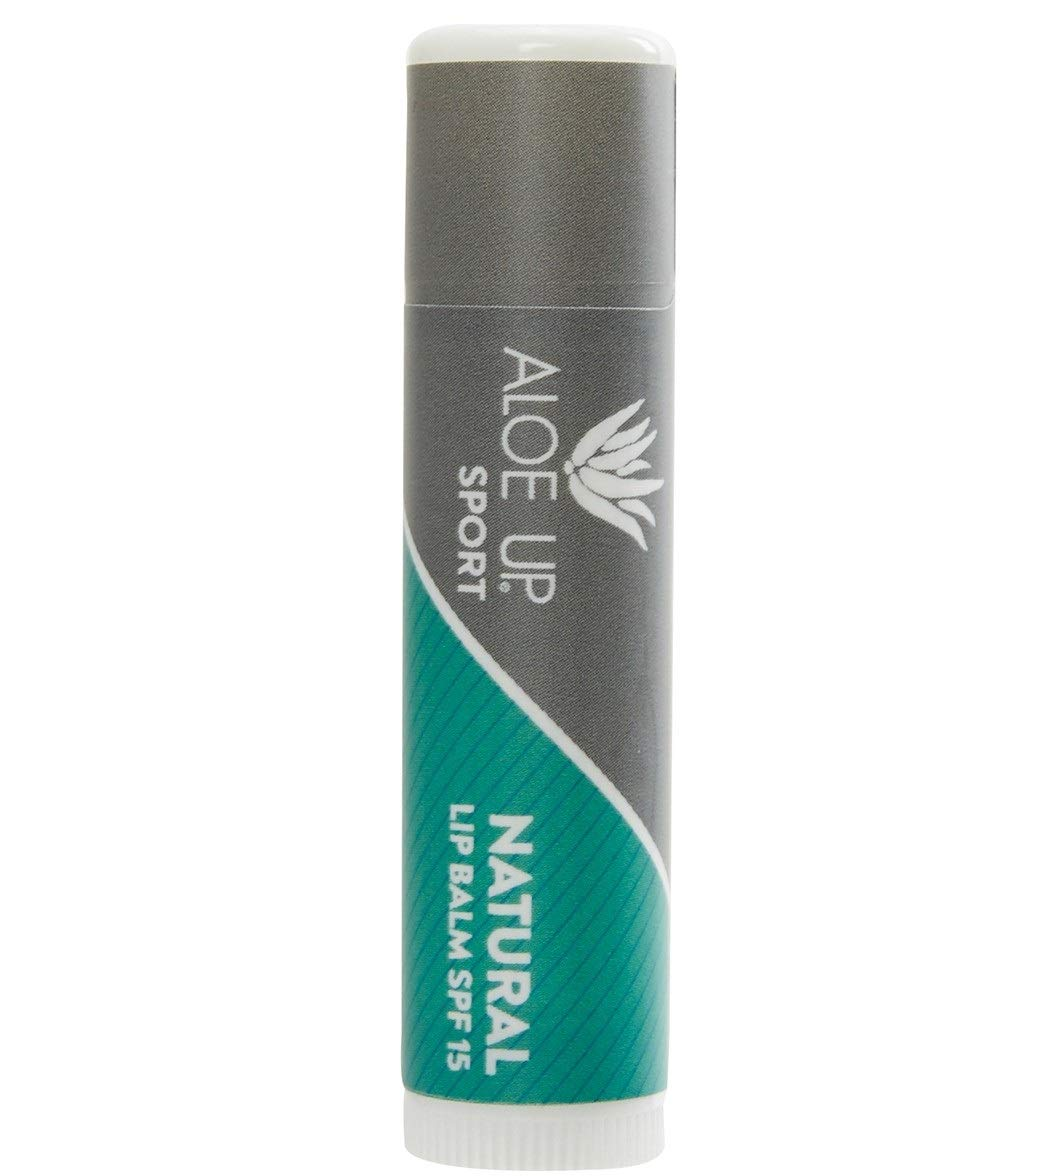 Aloe Up Pro Sport SPF 15 Natural Flavor Lip Balm Pack of 3